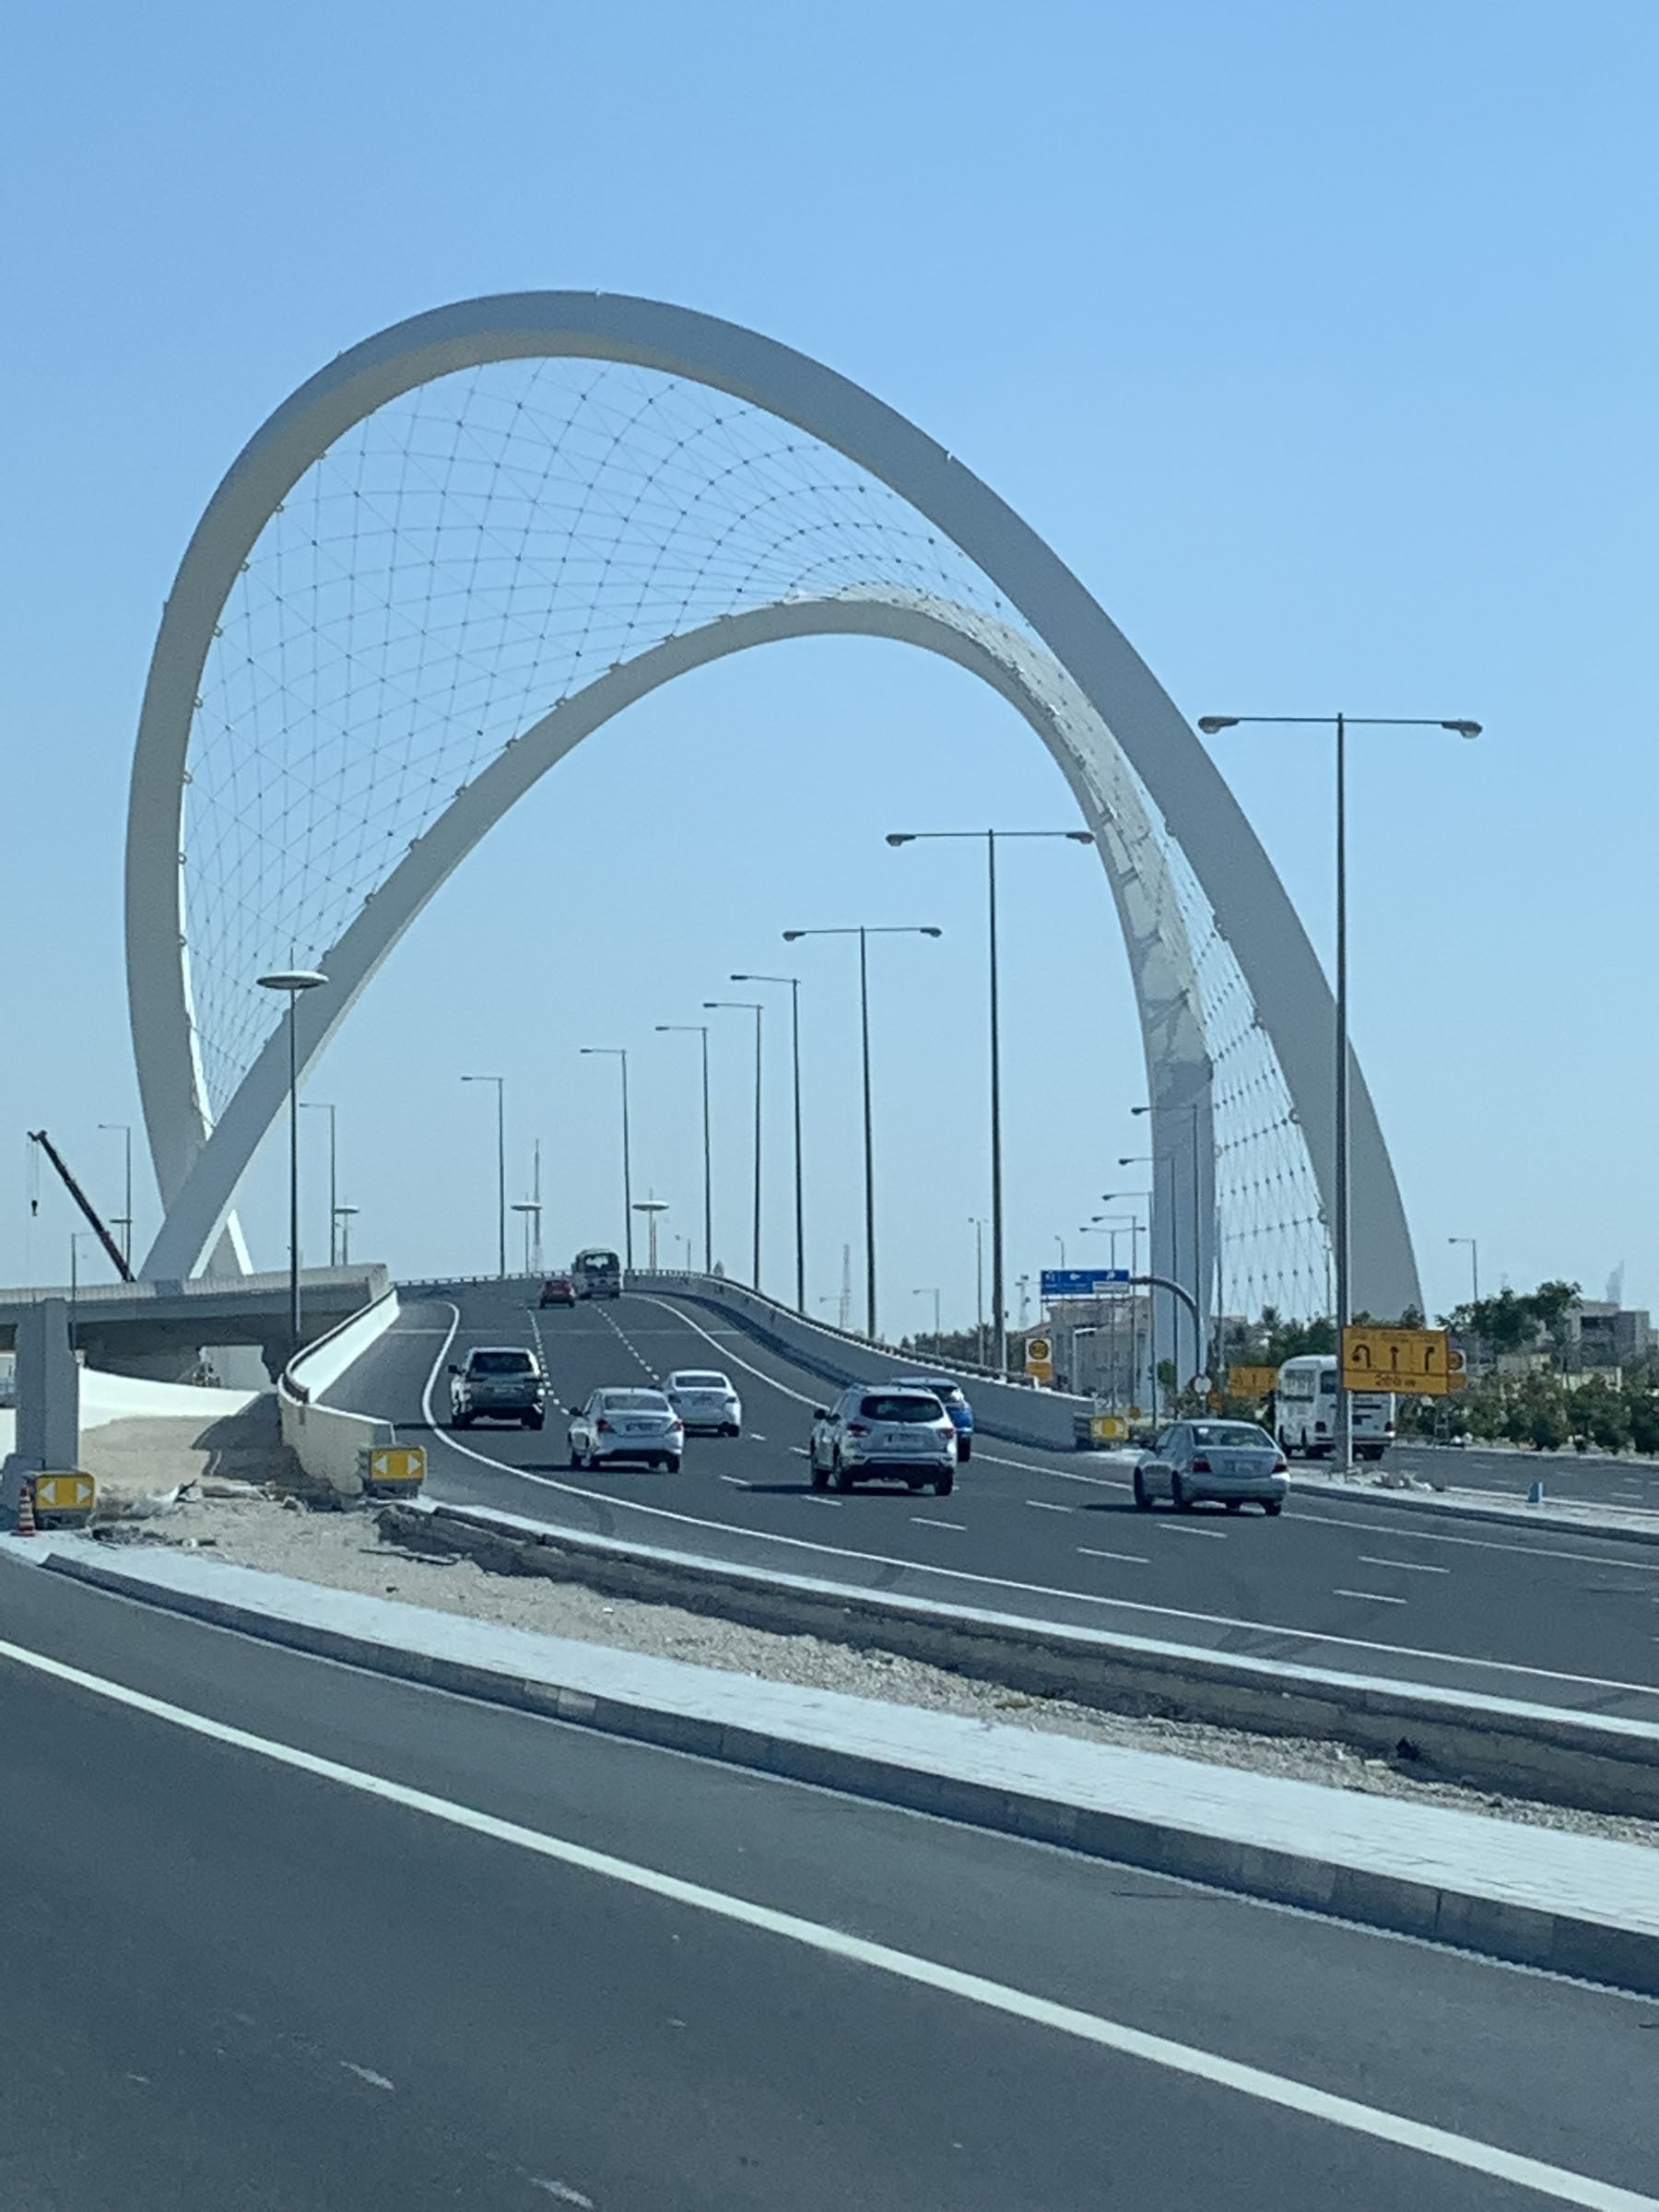 The Lusail Expressway, connecting Doha to the under-construction city of Lusail.